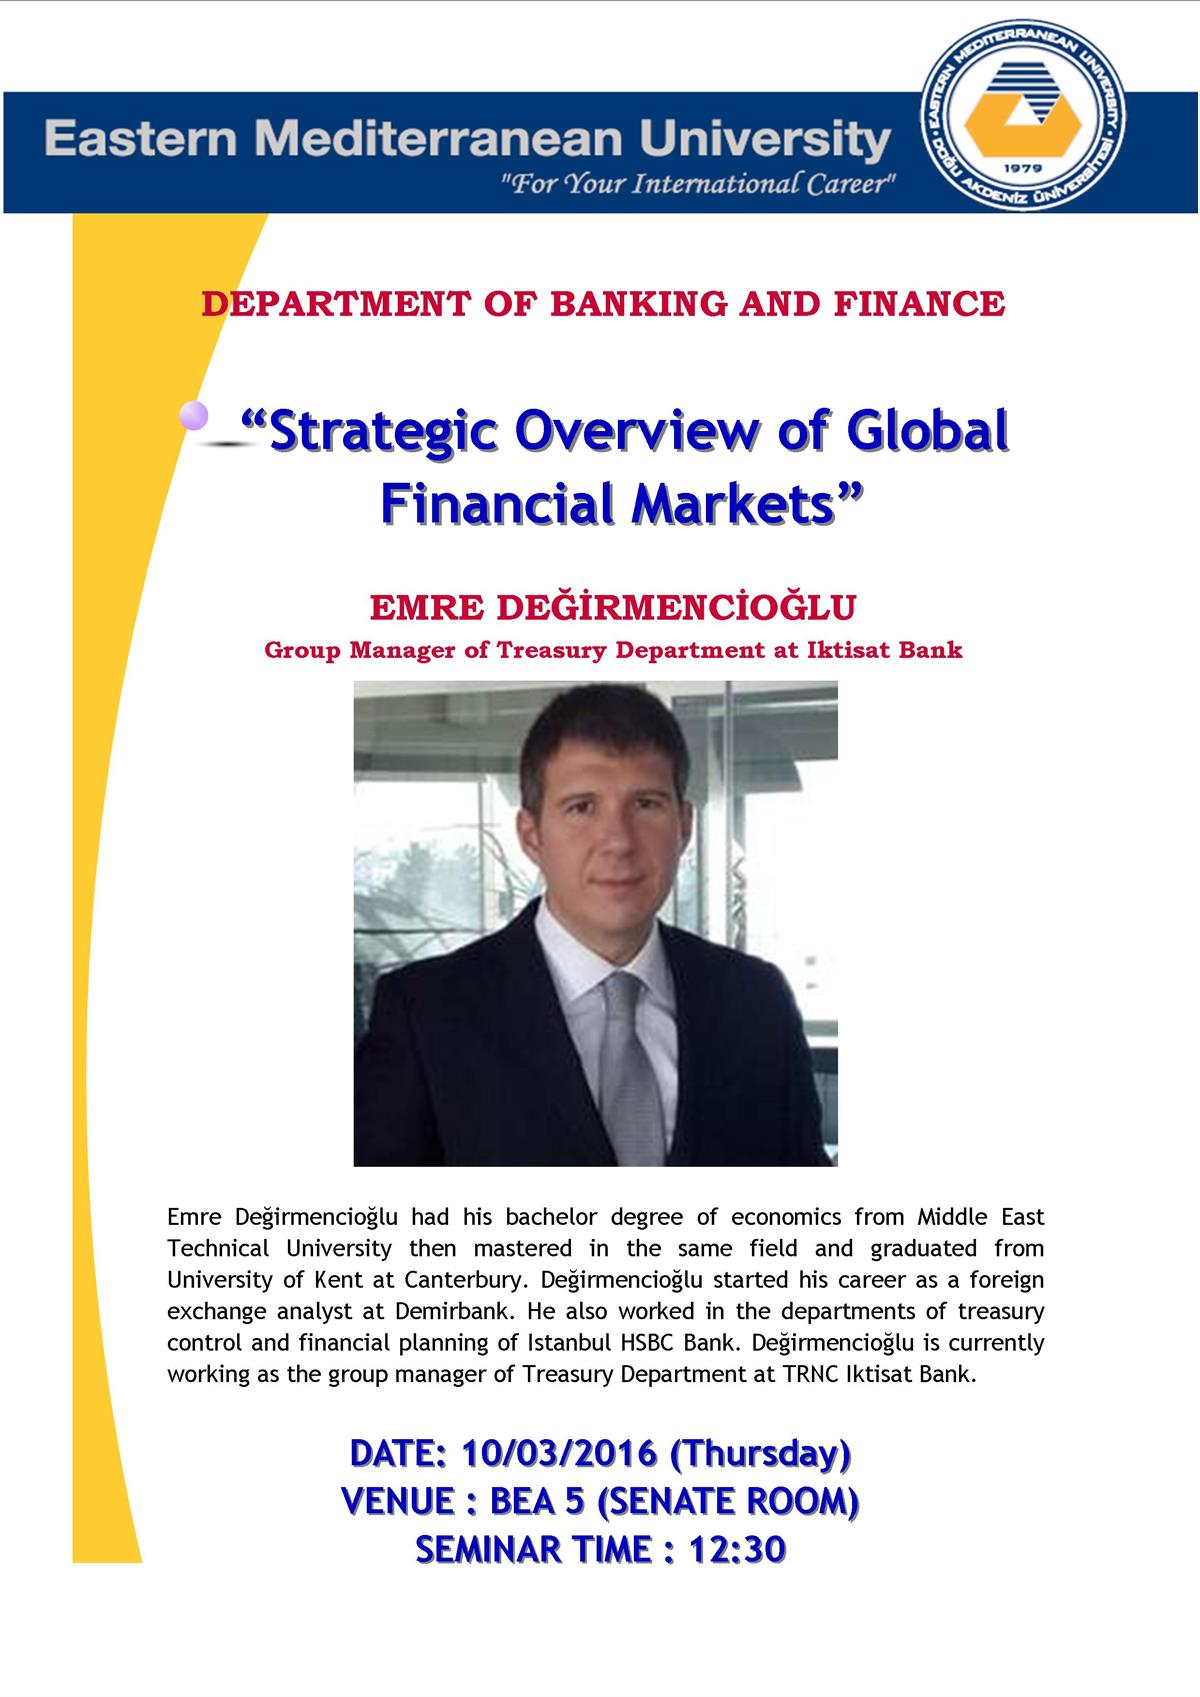 STRATEGIC OVERVIEW OF GLOBAL FINANCIAL MARKETS